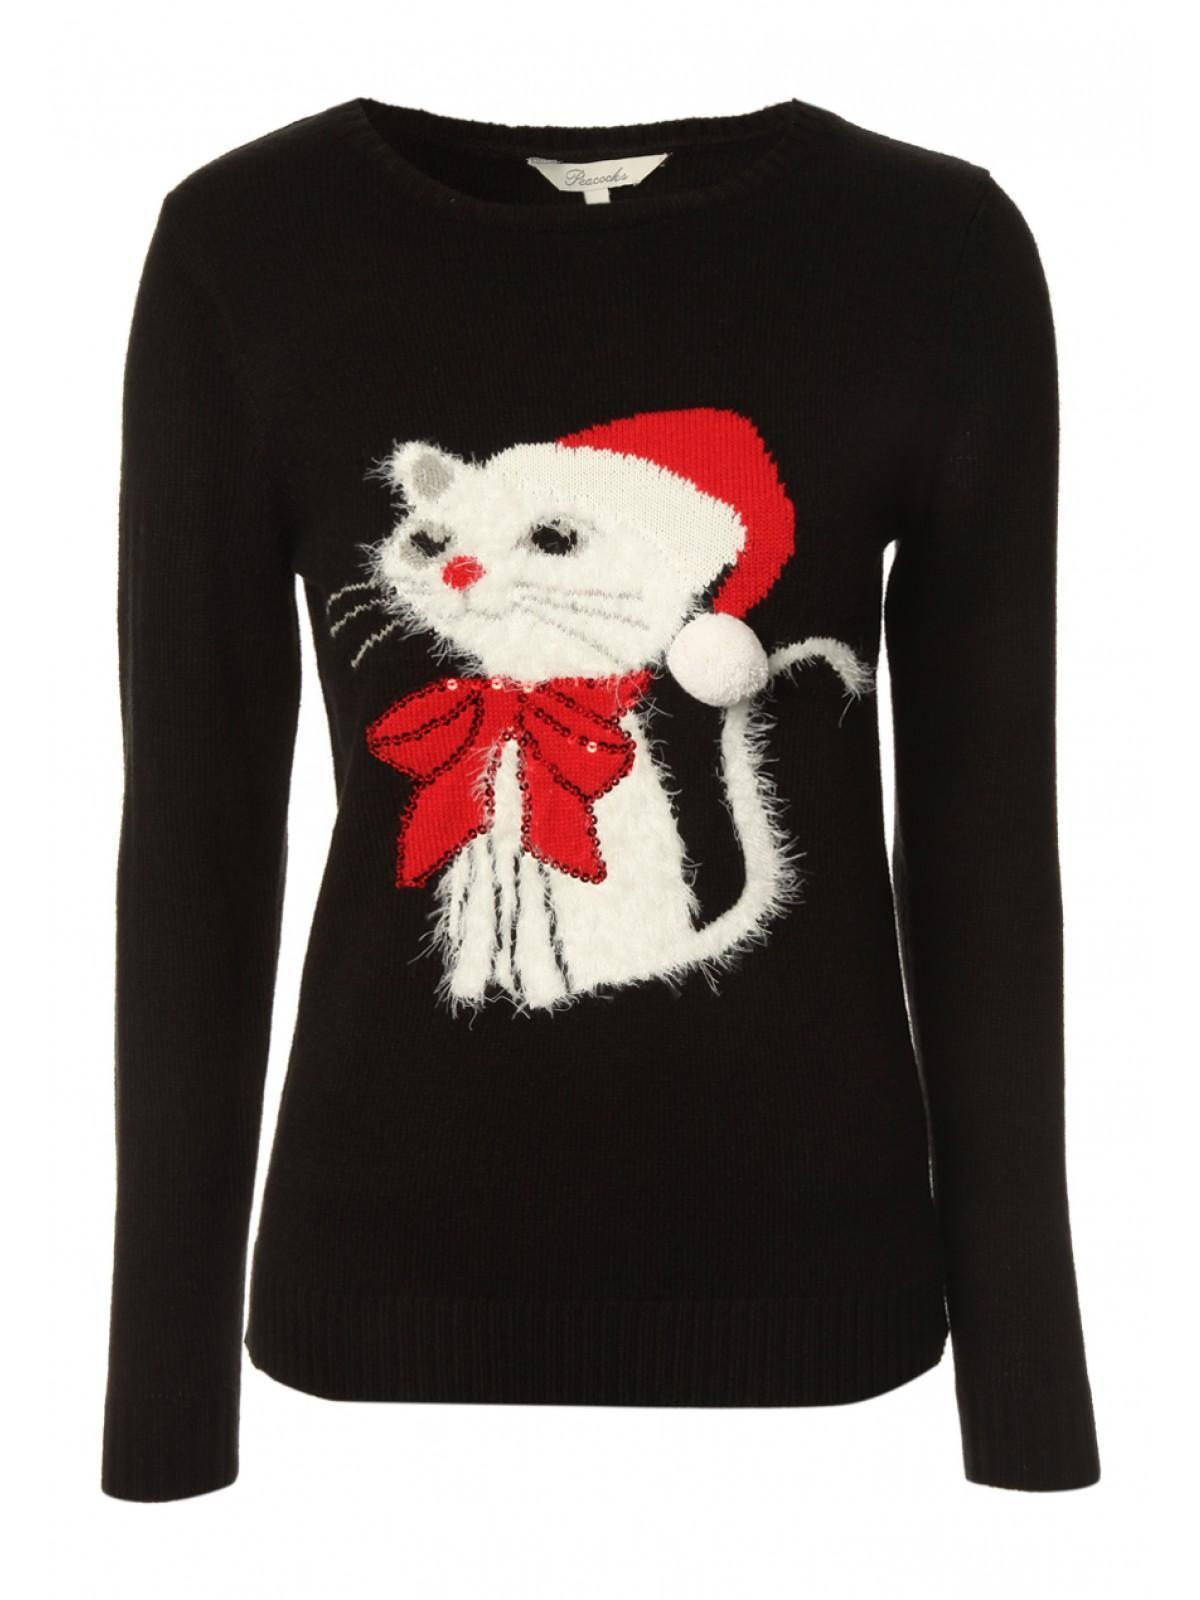 Our game-changing Christmas sweater designs will have your friends and family snickering all throughout the night. Complete with premium materials and a comfortable fit, our ugly Christmas sweaters for men will give the gift of laughter this holiday season - the gift that keeps on giving! Men's Ugly Cat Christmas Sweater with Bells. $